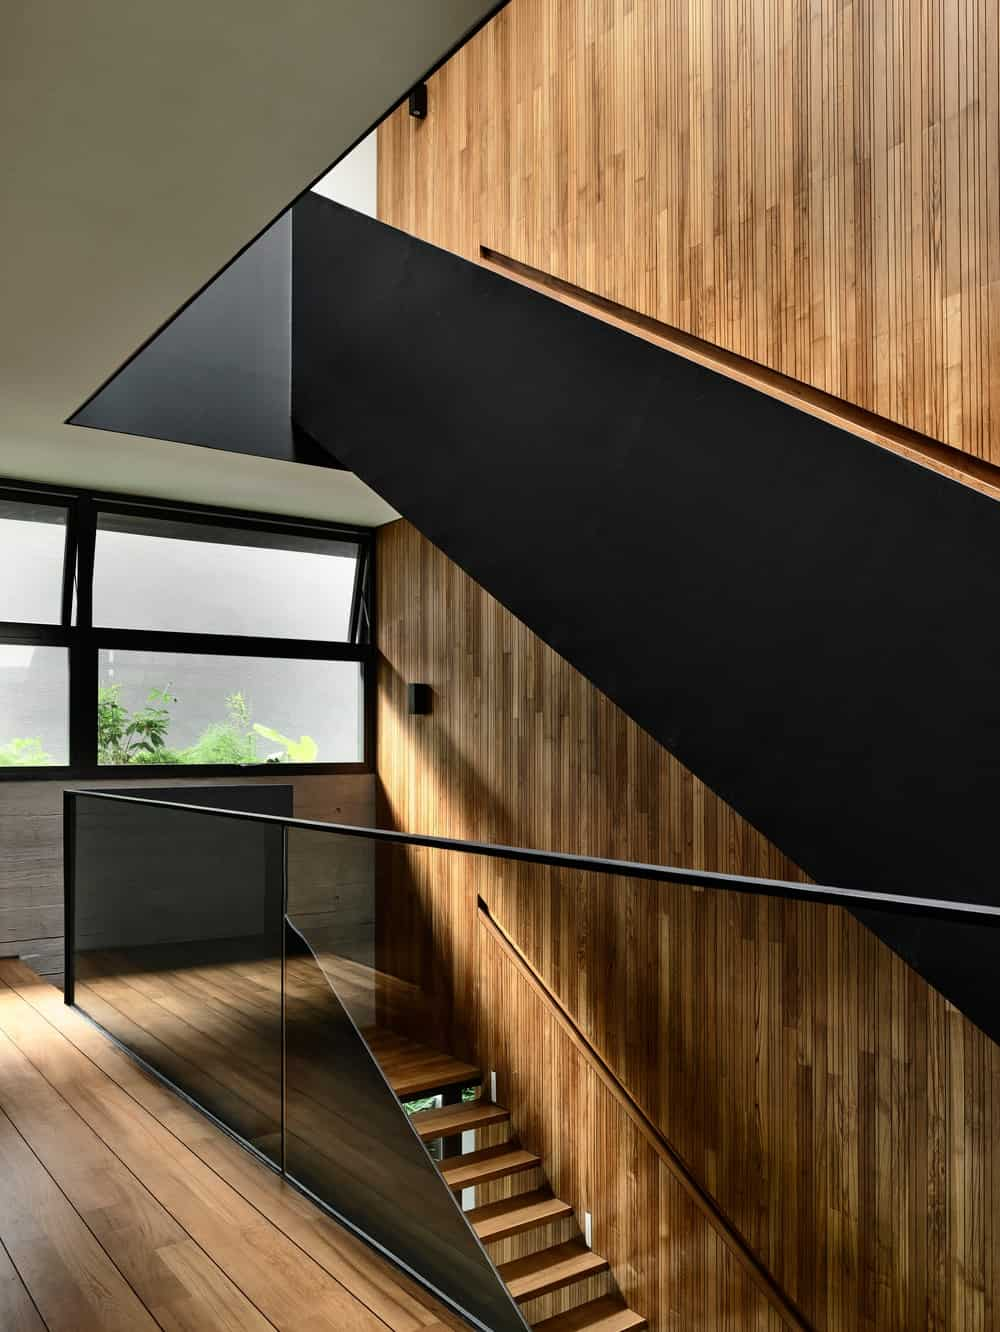 The other side of the staircase also hase large window to bring in natural lighting for the stairs.